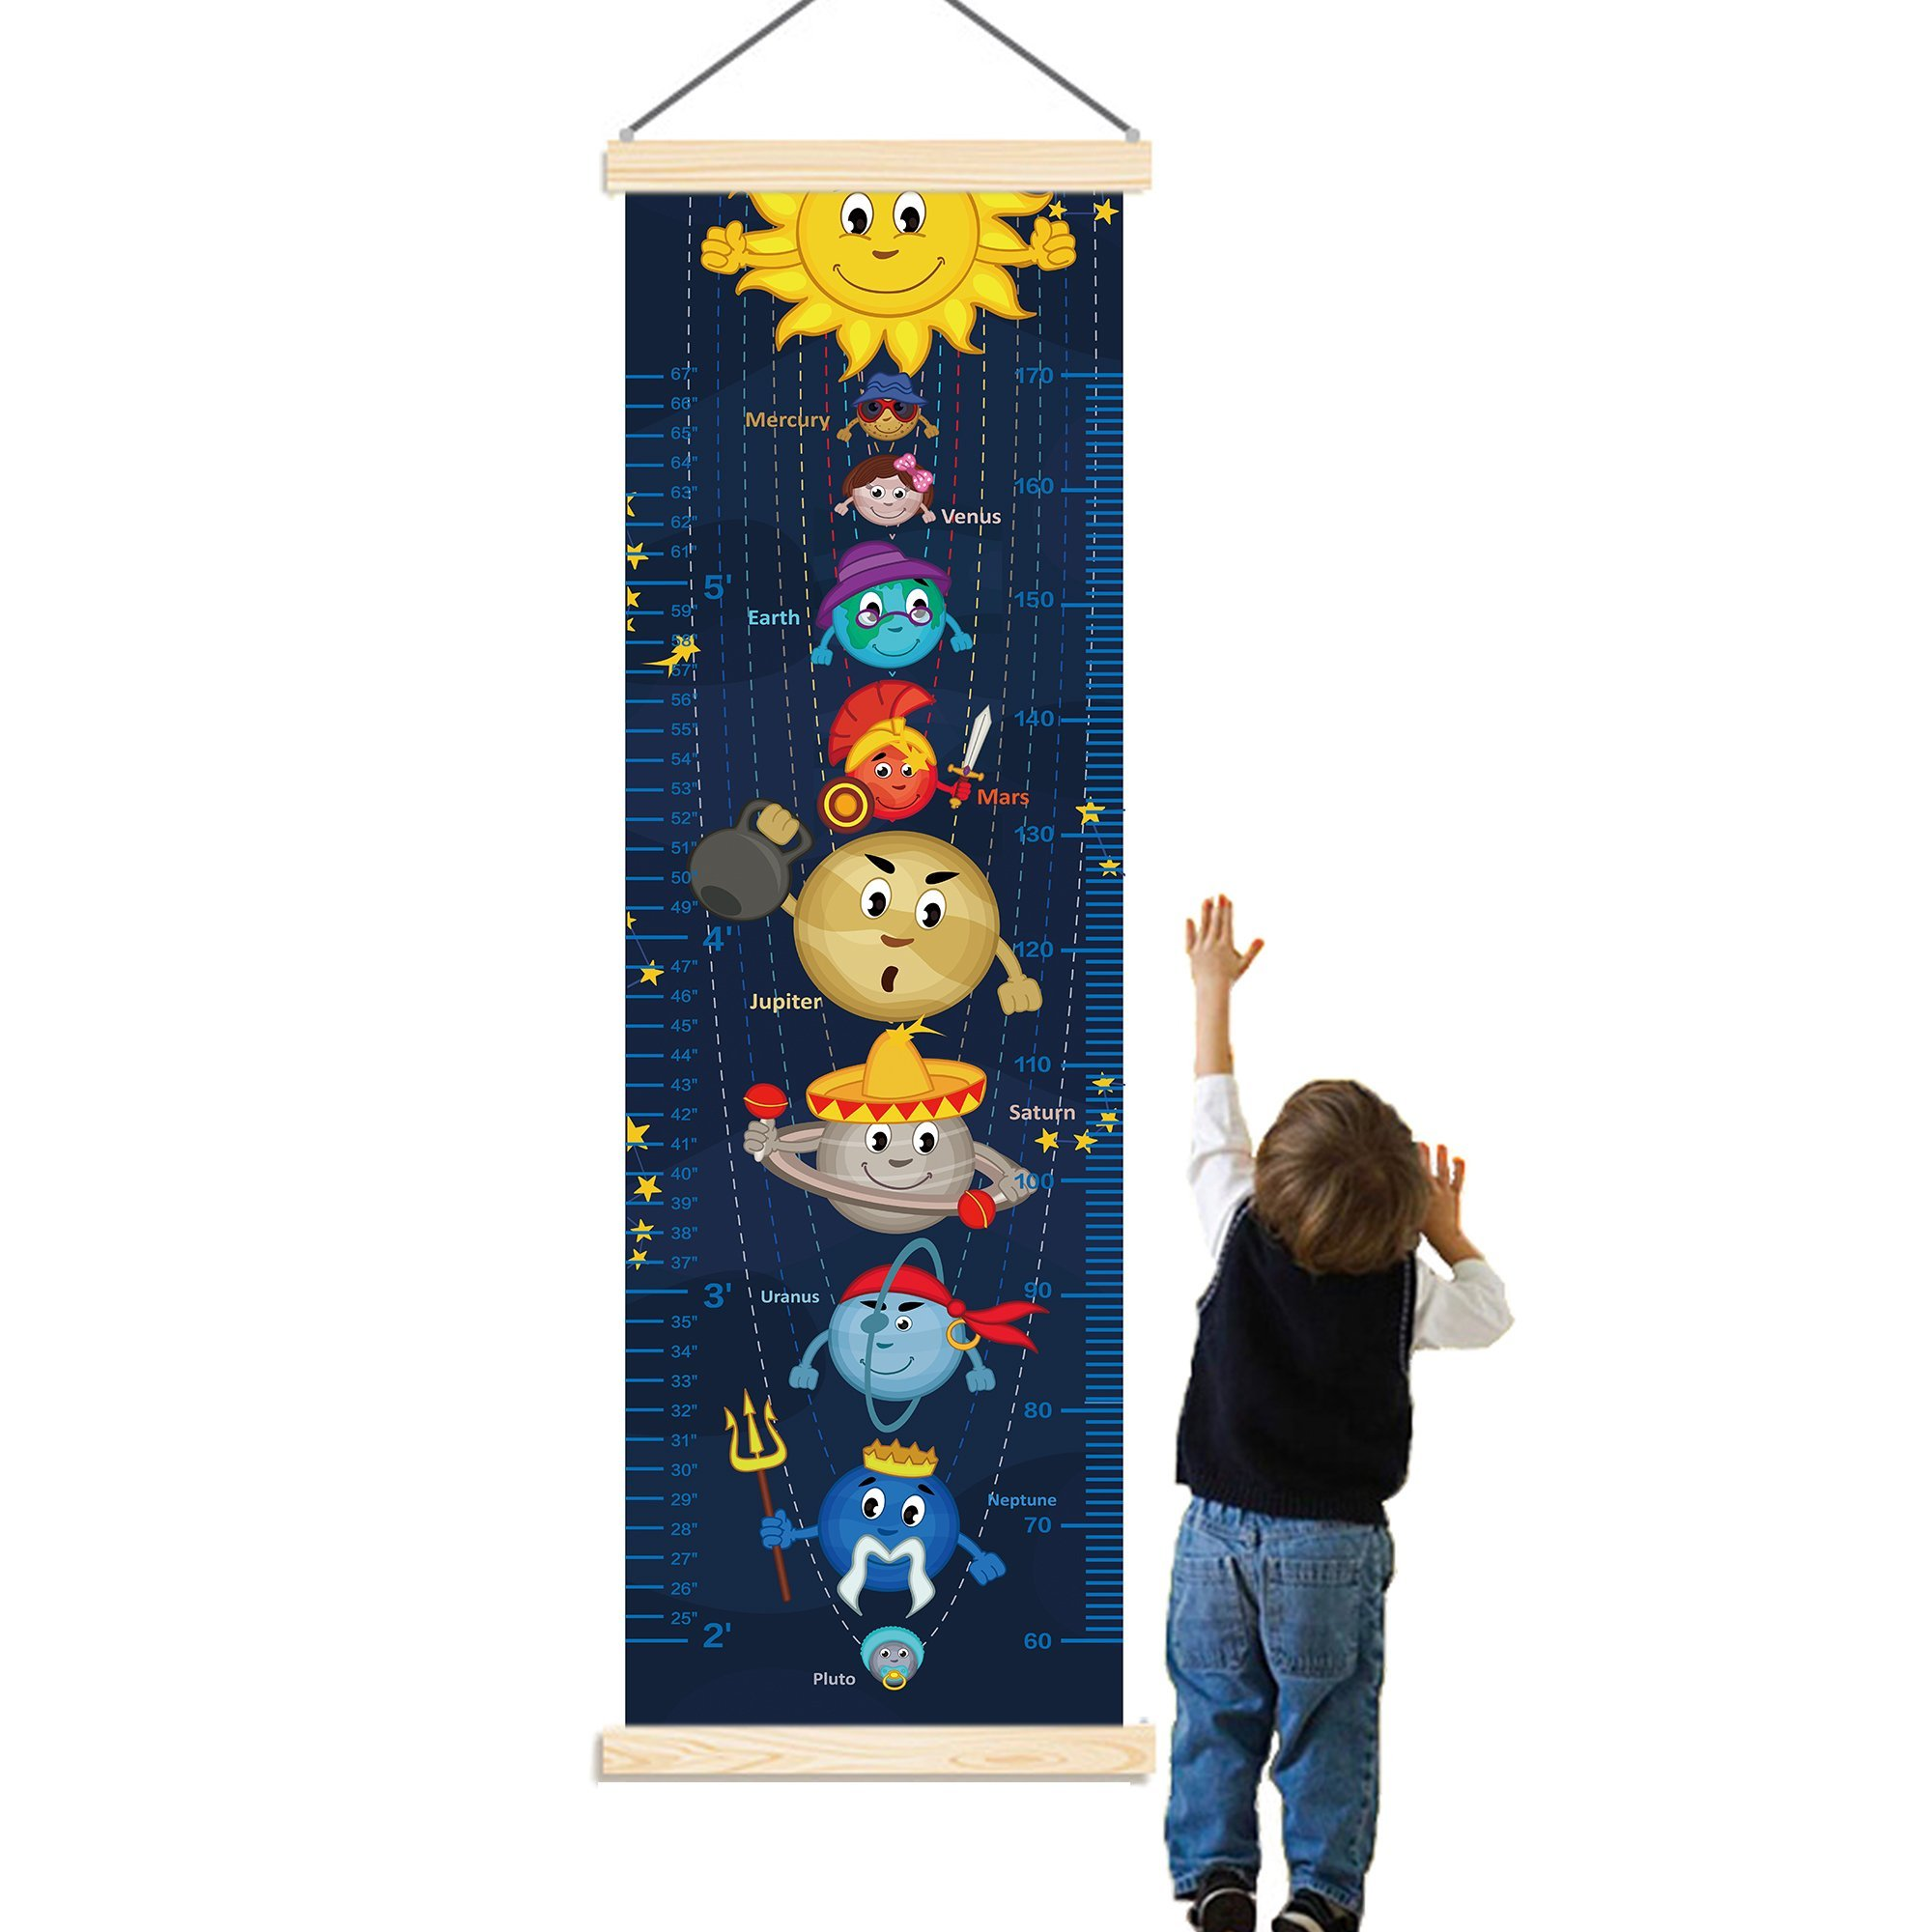 Panda_mall Solar System Baby Height Growth Chart Ruler Kids Roll-up Canvas Height Chart Removable Wall Hanging Measurement Chart Wall Decoration with Wood Frame for Boys Girls Kids Room